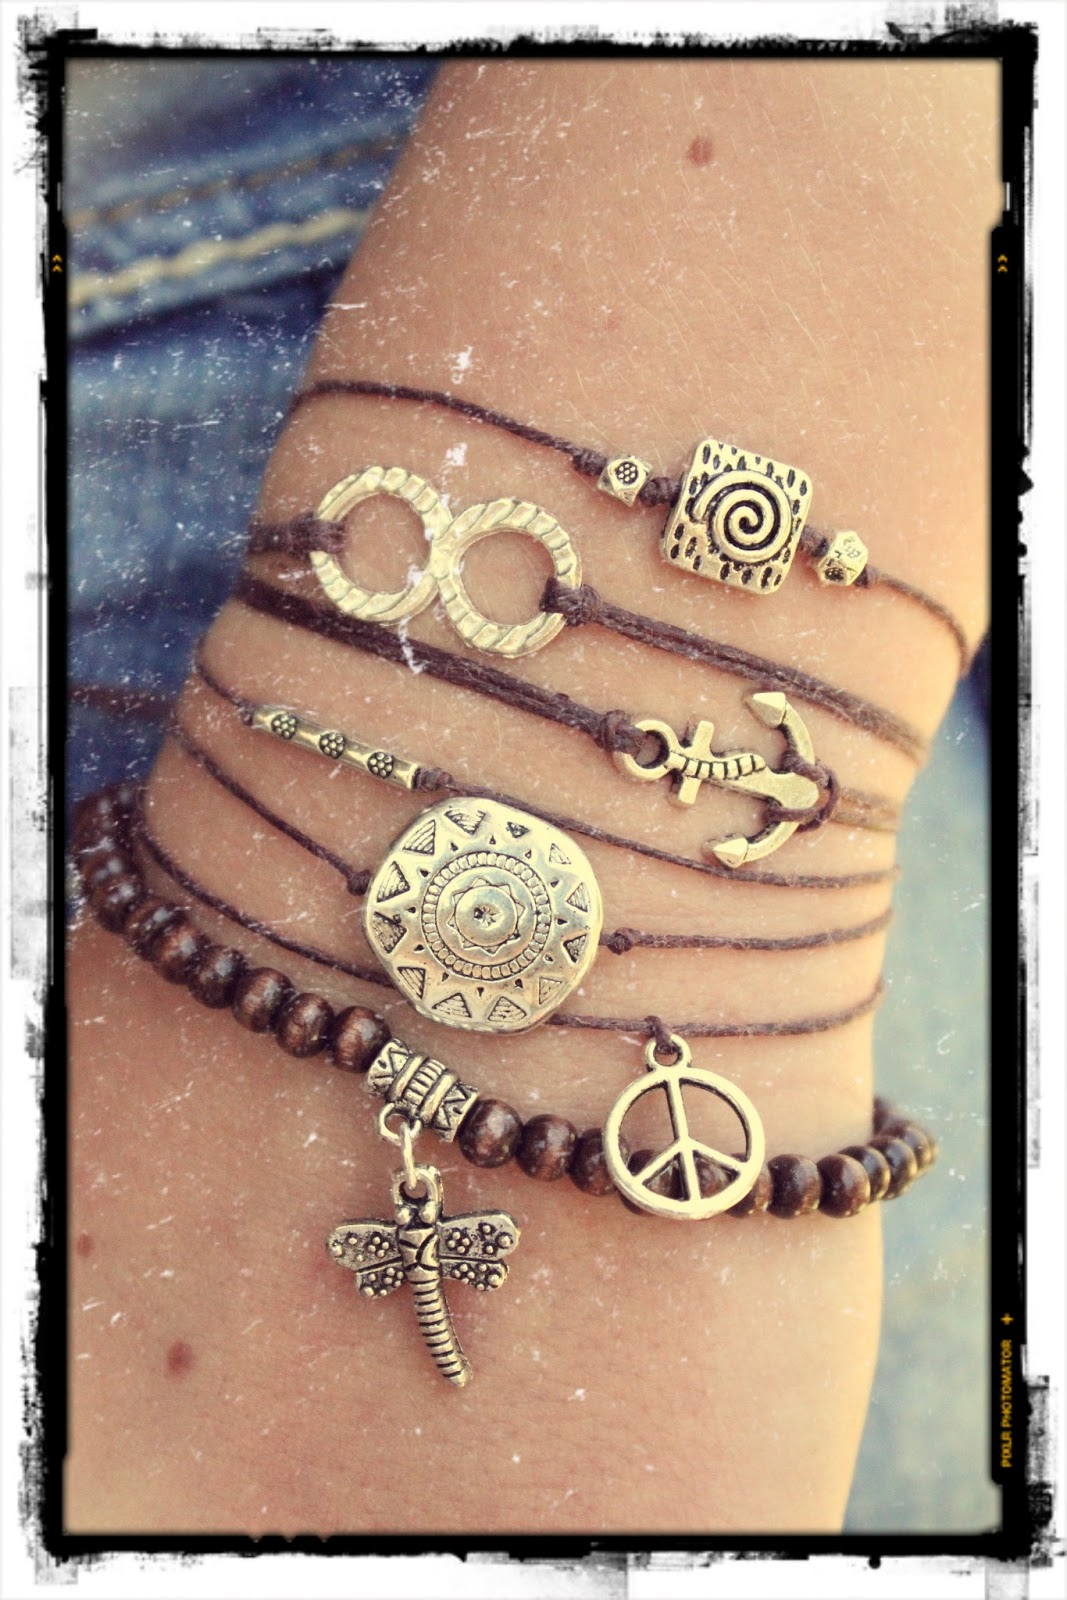 Ever Designs Blog: How to Create Great Bracelet Stacks